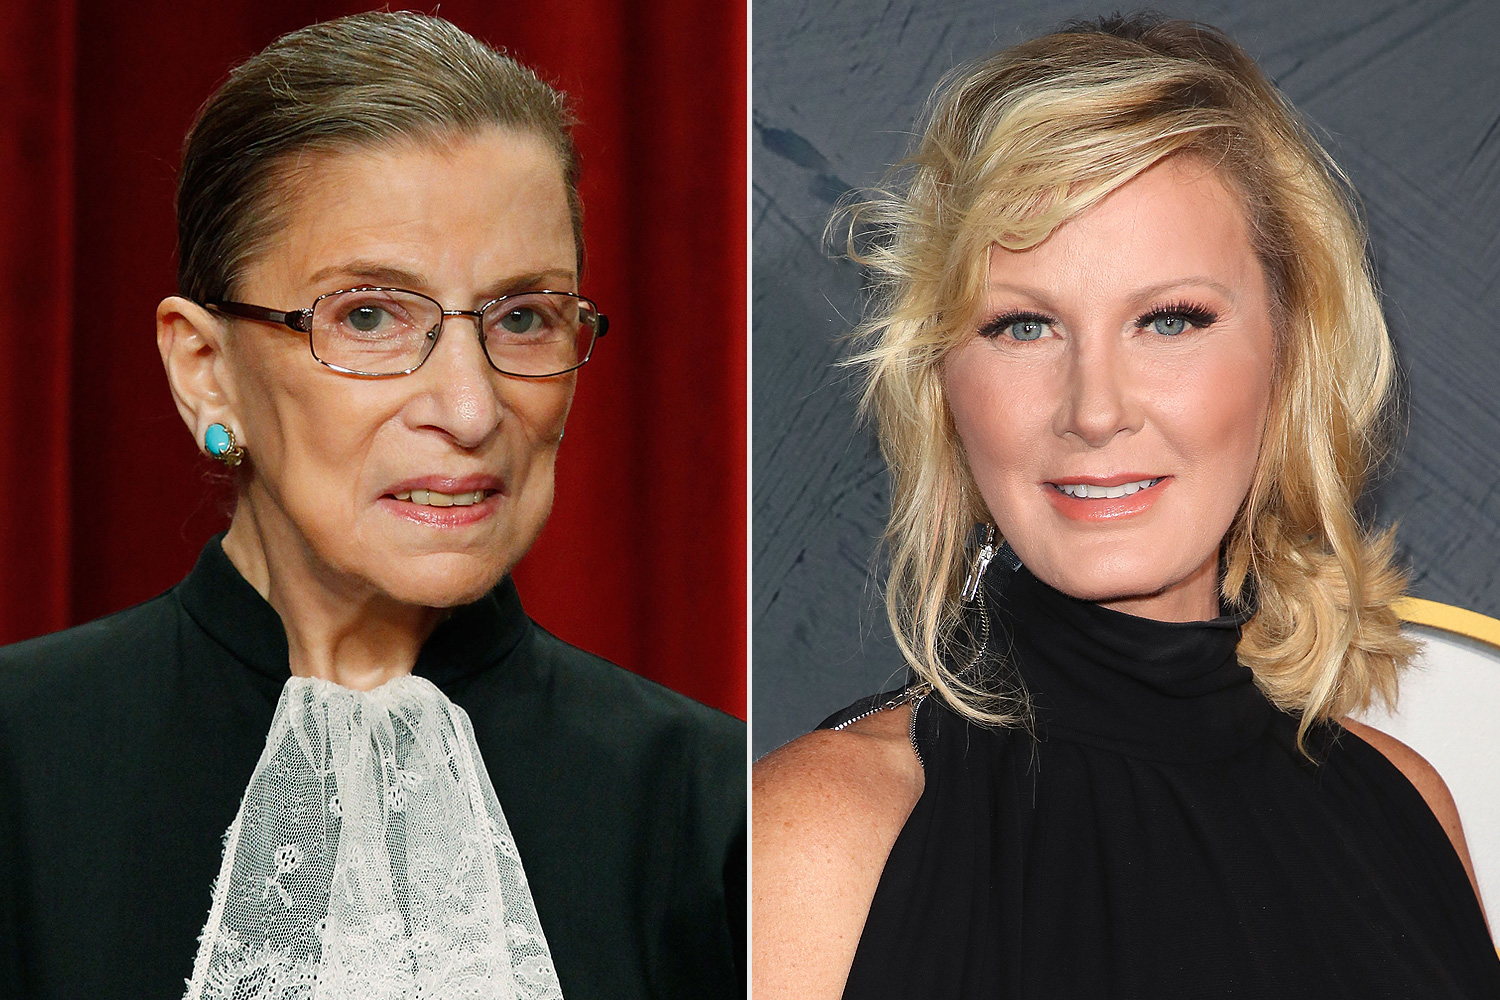 Ruth Bader Ginsburg (left) and Sandra Lee